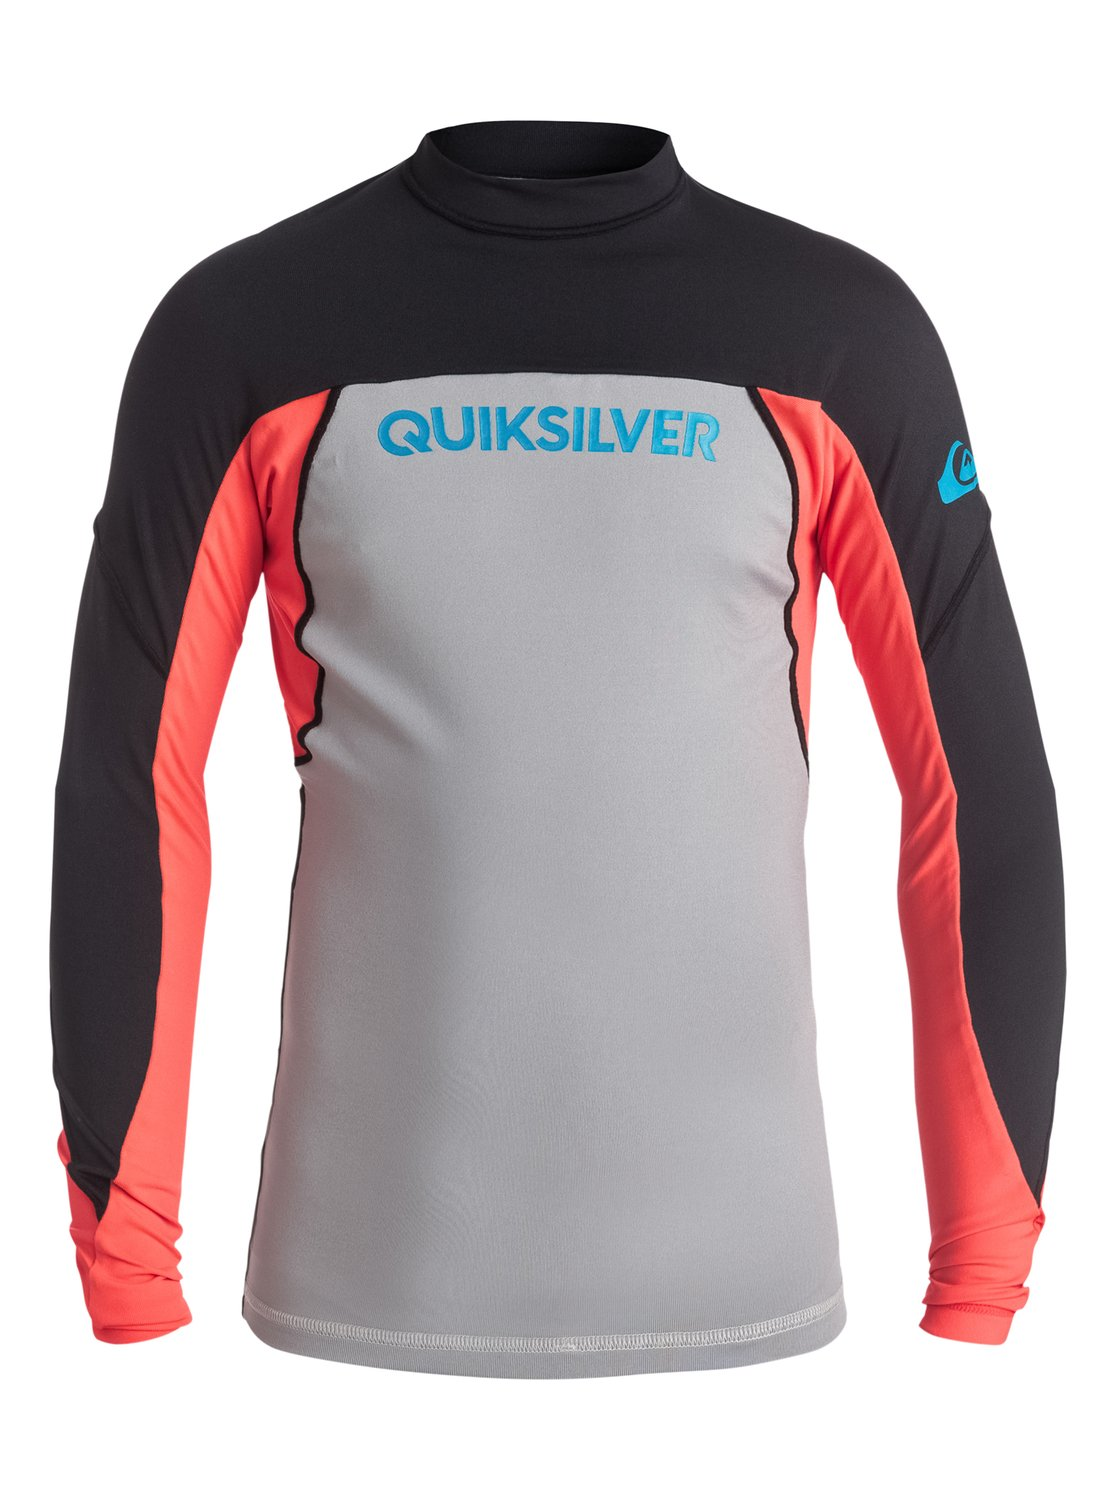 Boy's 8-16 Performer Long Sleeve Rashguard